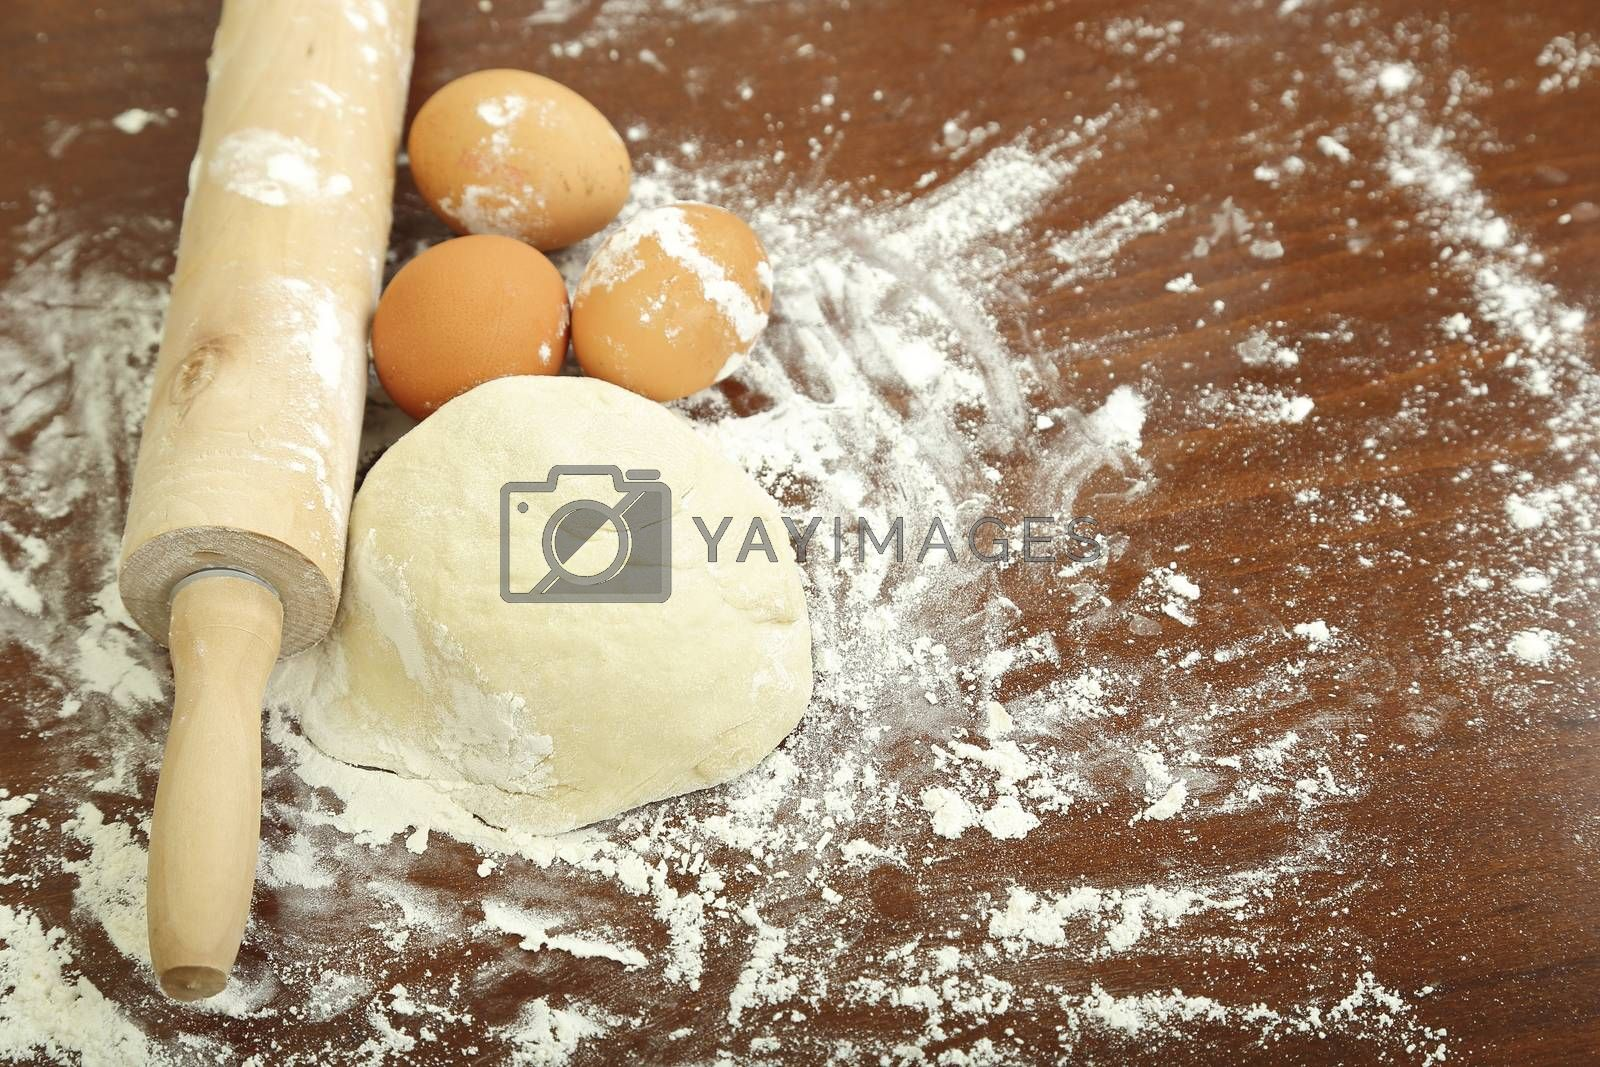 dough with flour, rolling pin and eggs on wooden surface